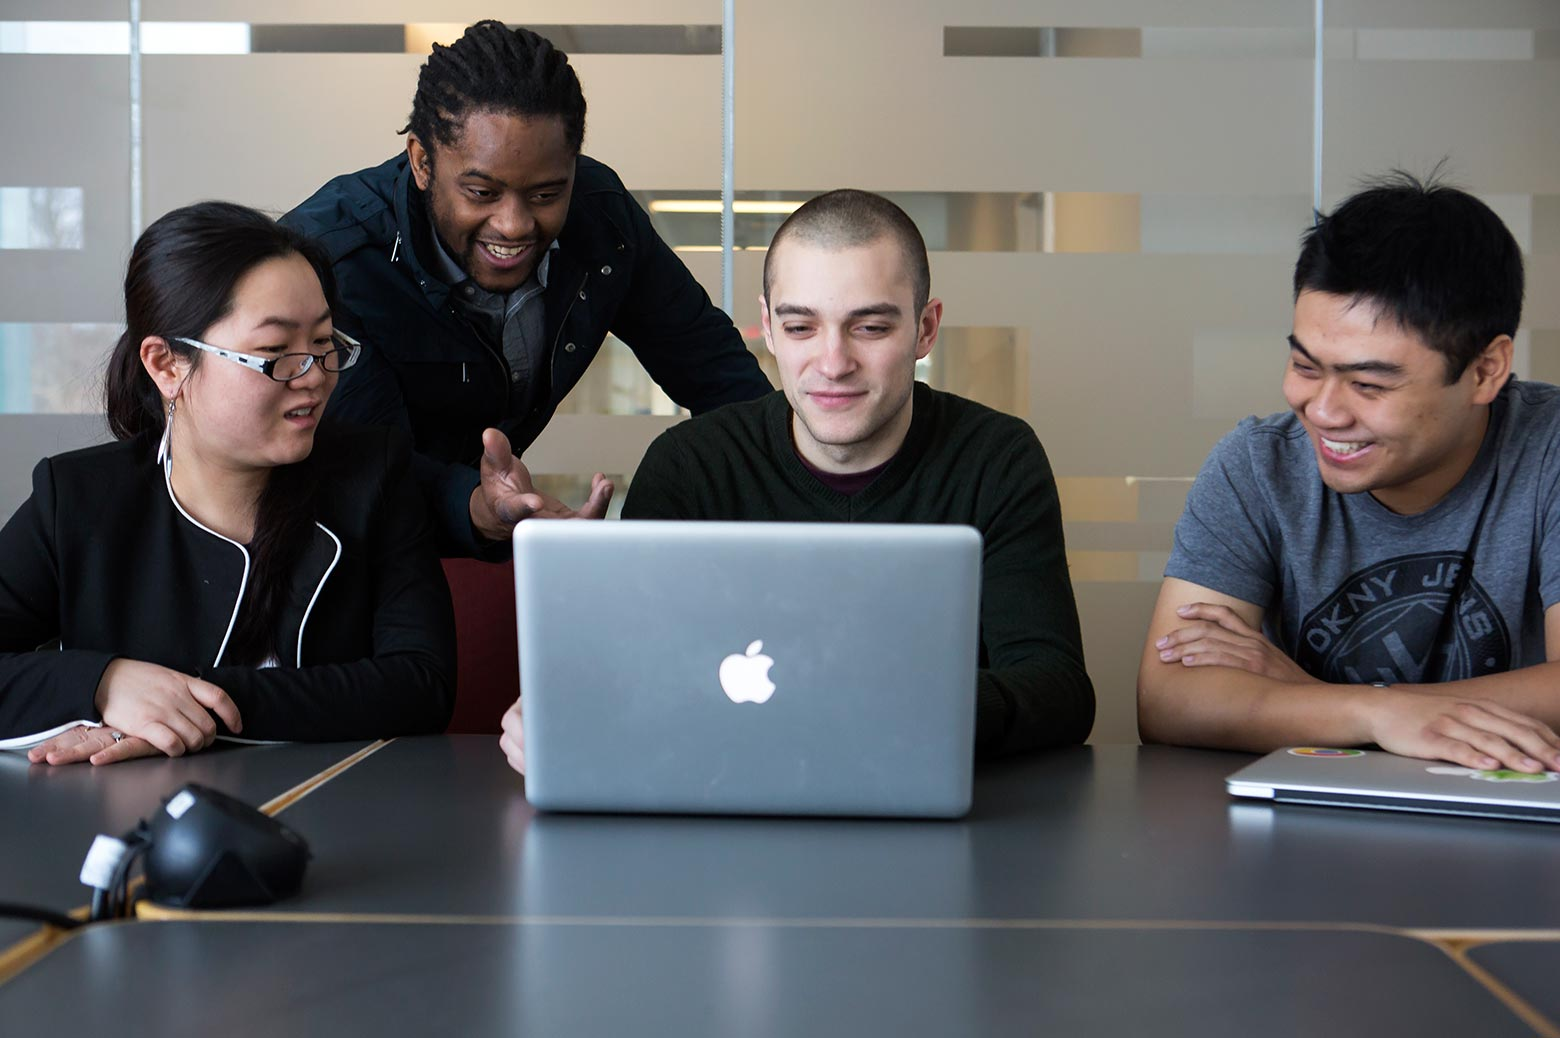 Professors and student gather around a computer